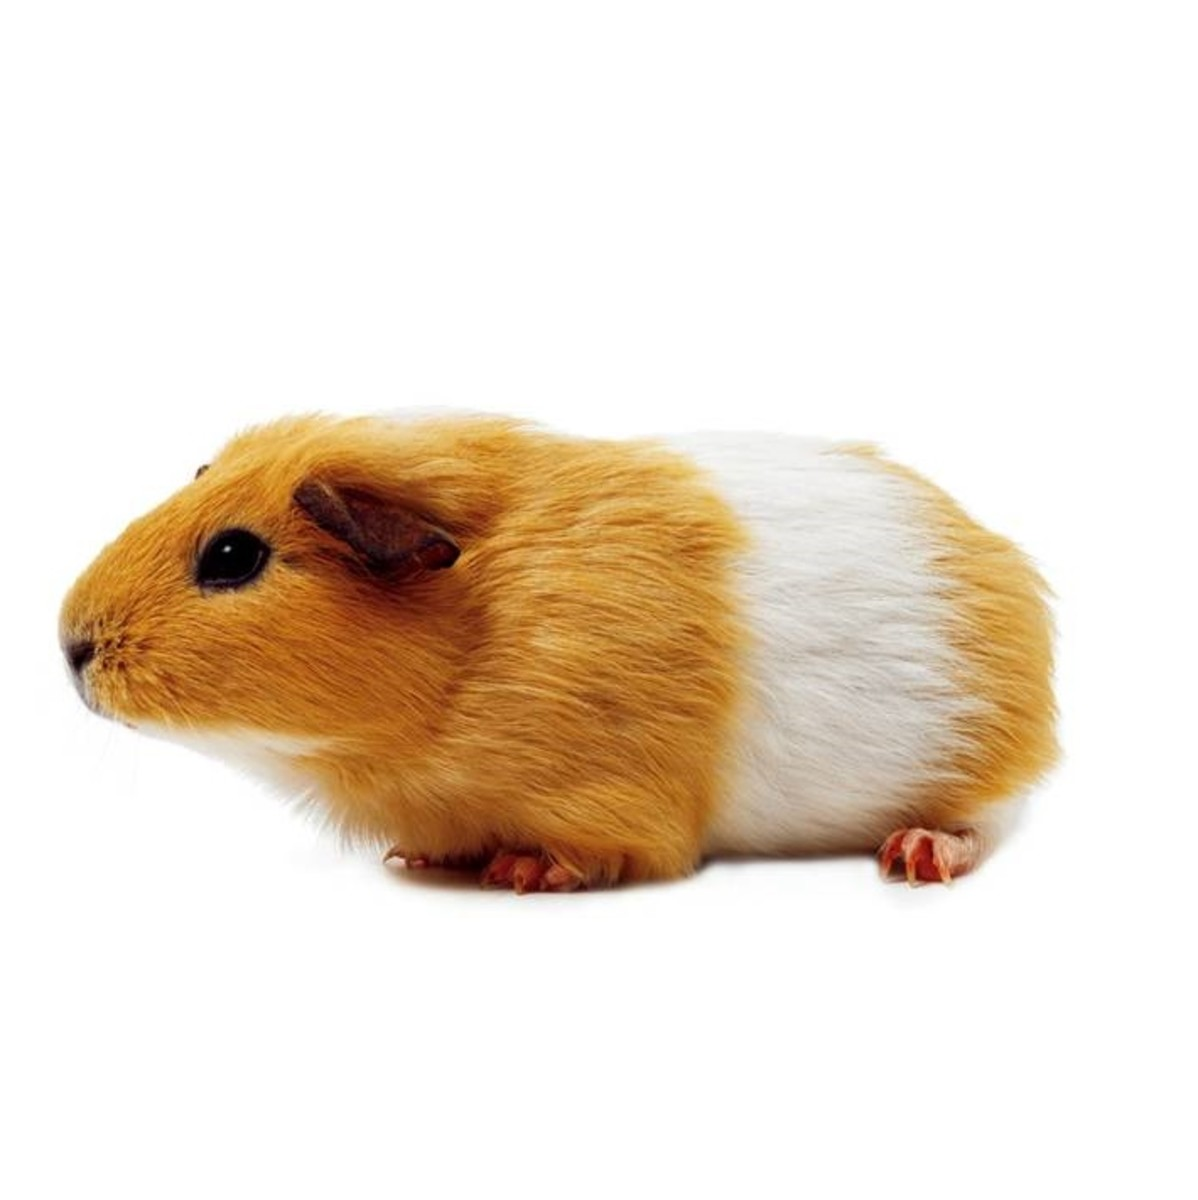 Keeping Small Animals as Pets in a School Classroom: Tips and Guidelines